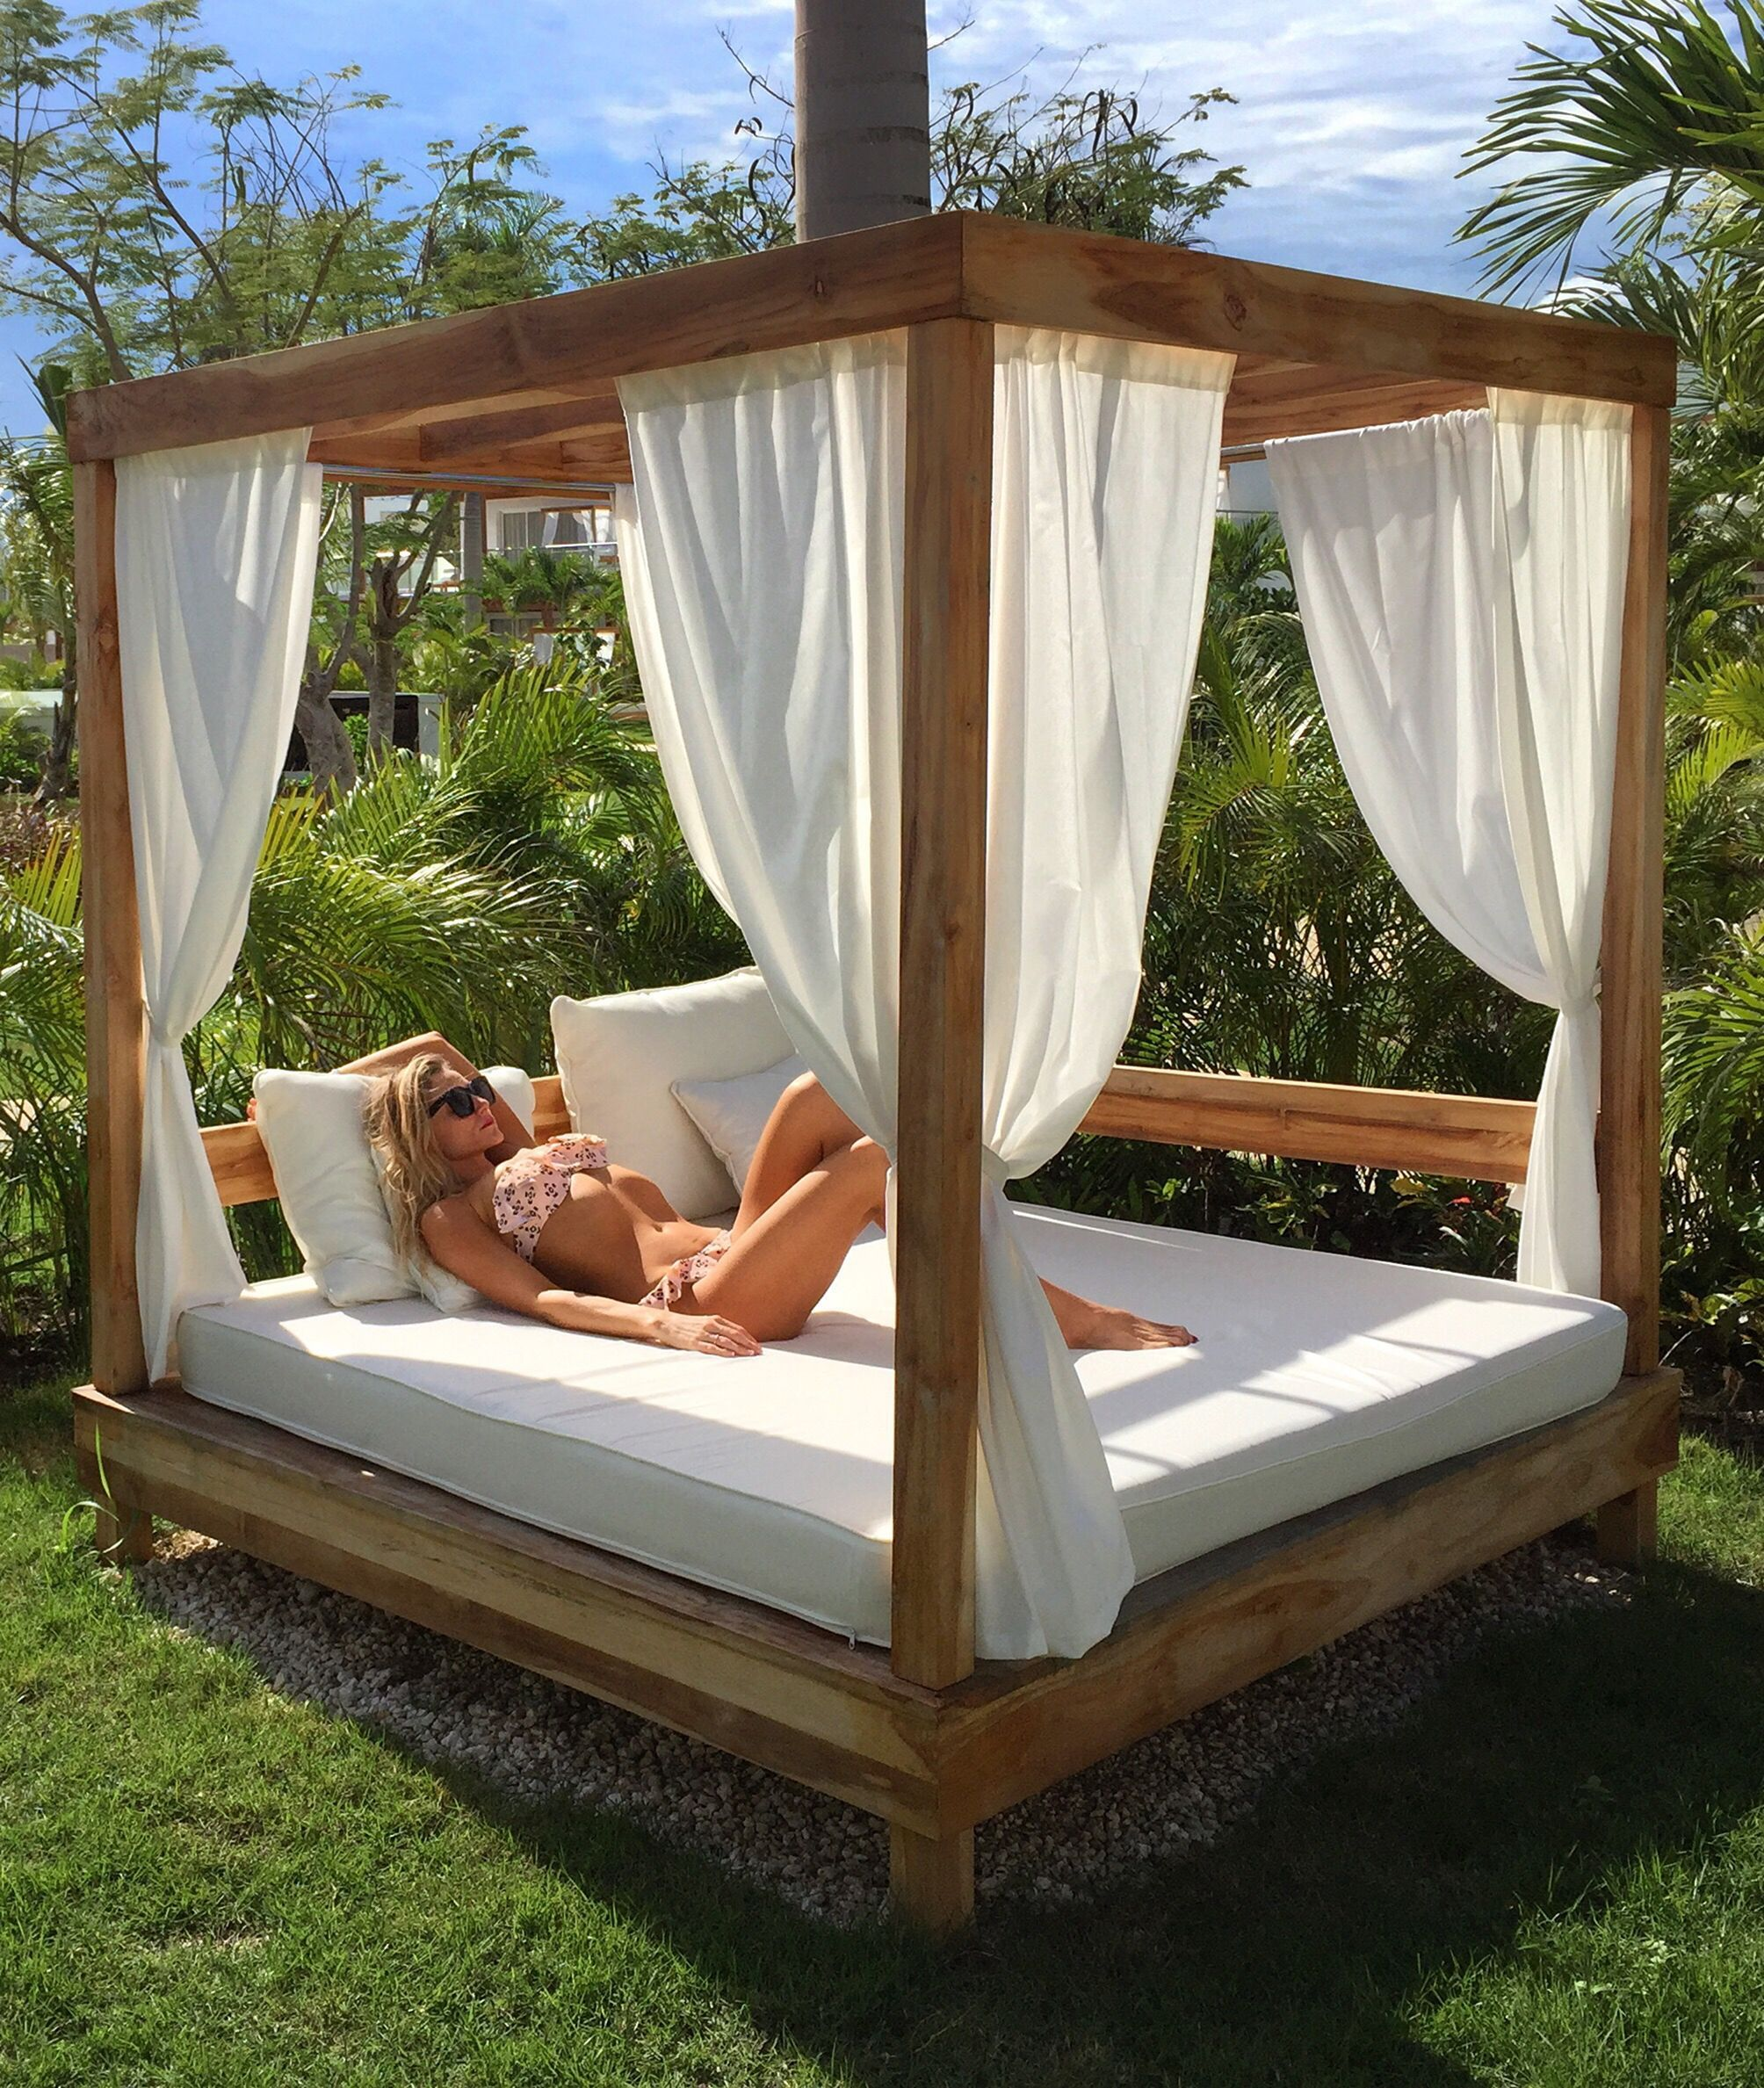 10 Comfy Outdoor Bedroom Design For Resting Place Ideas in